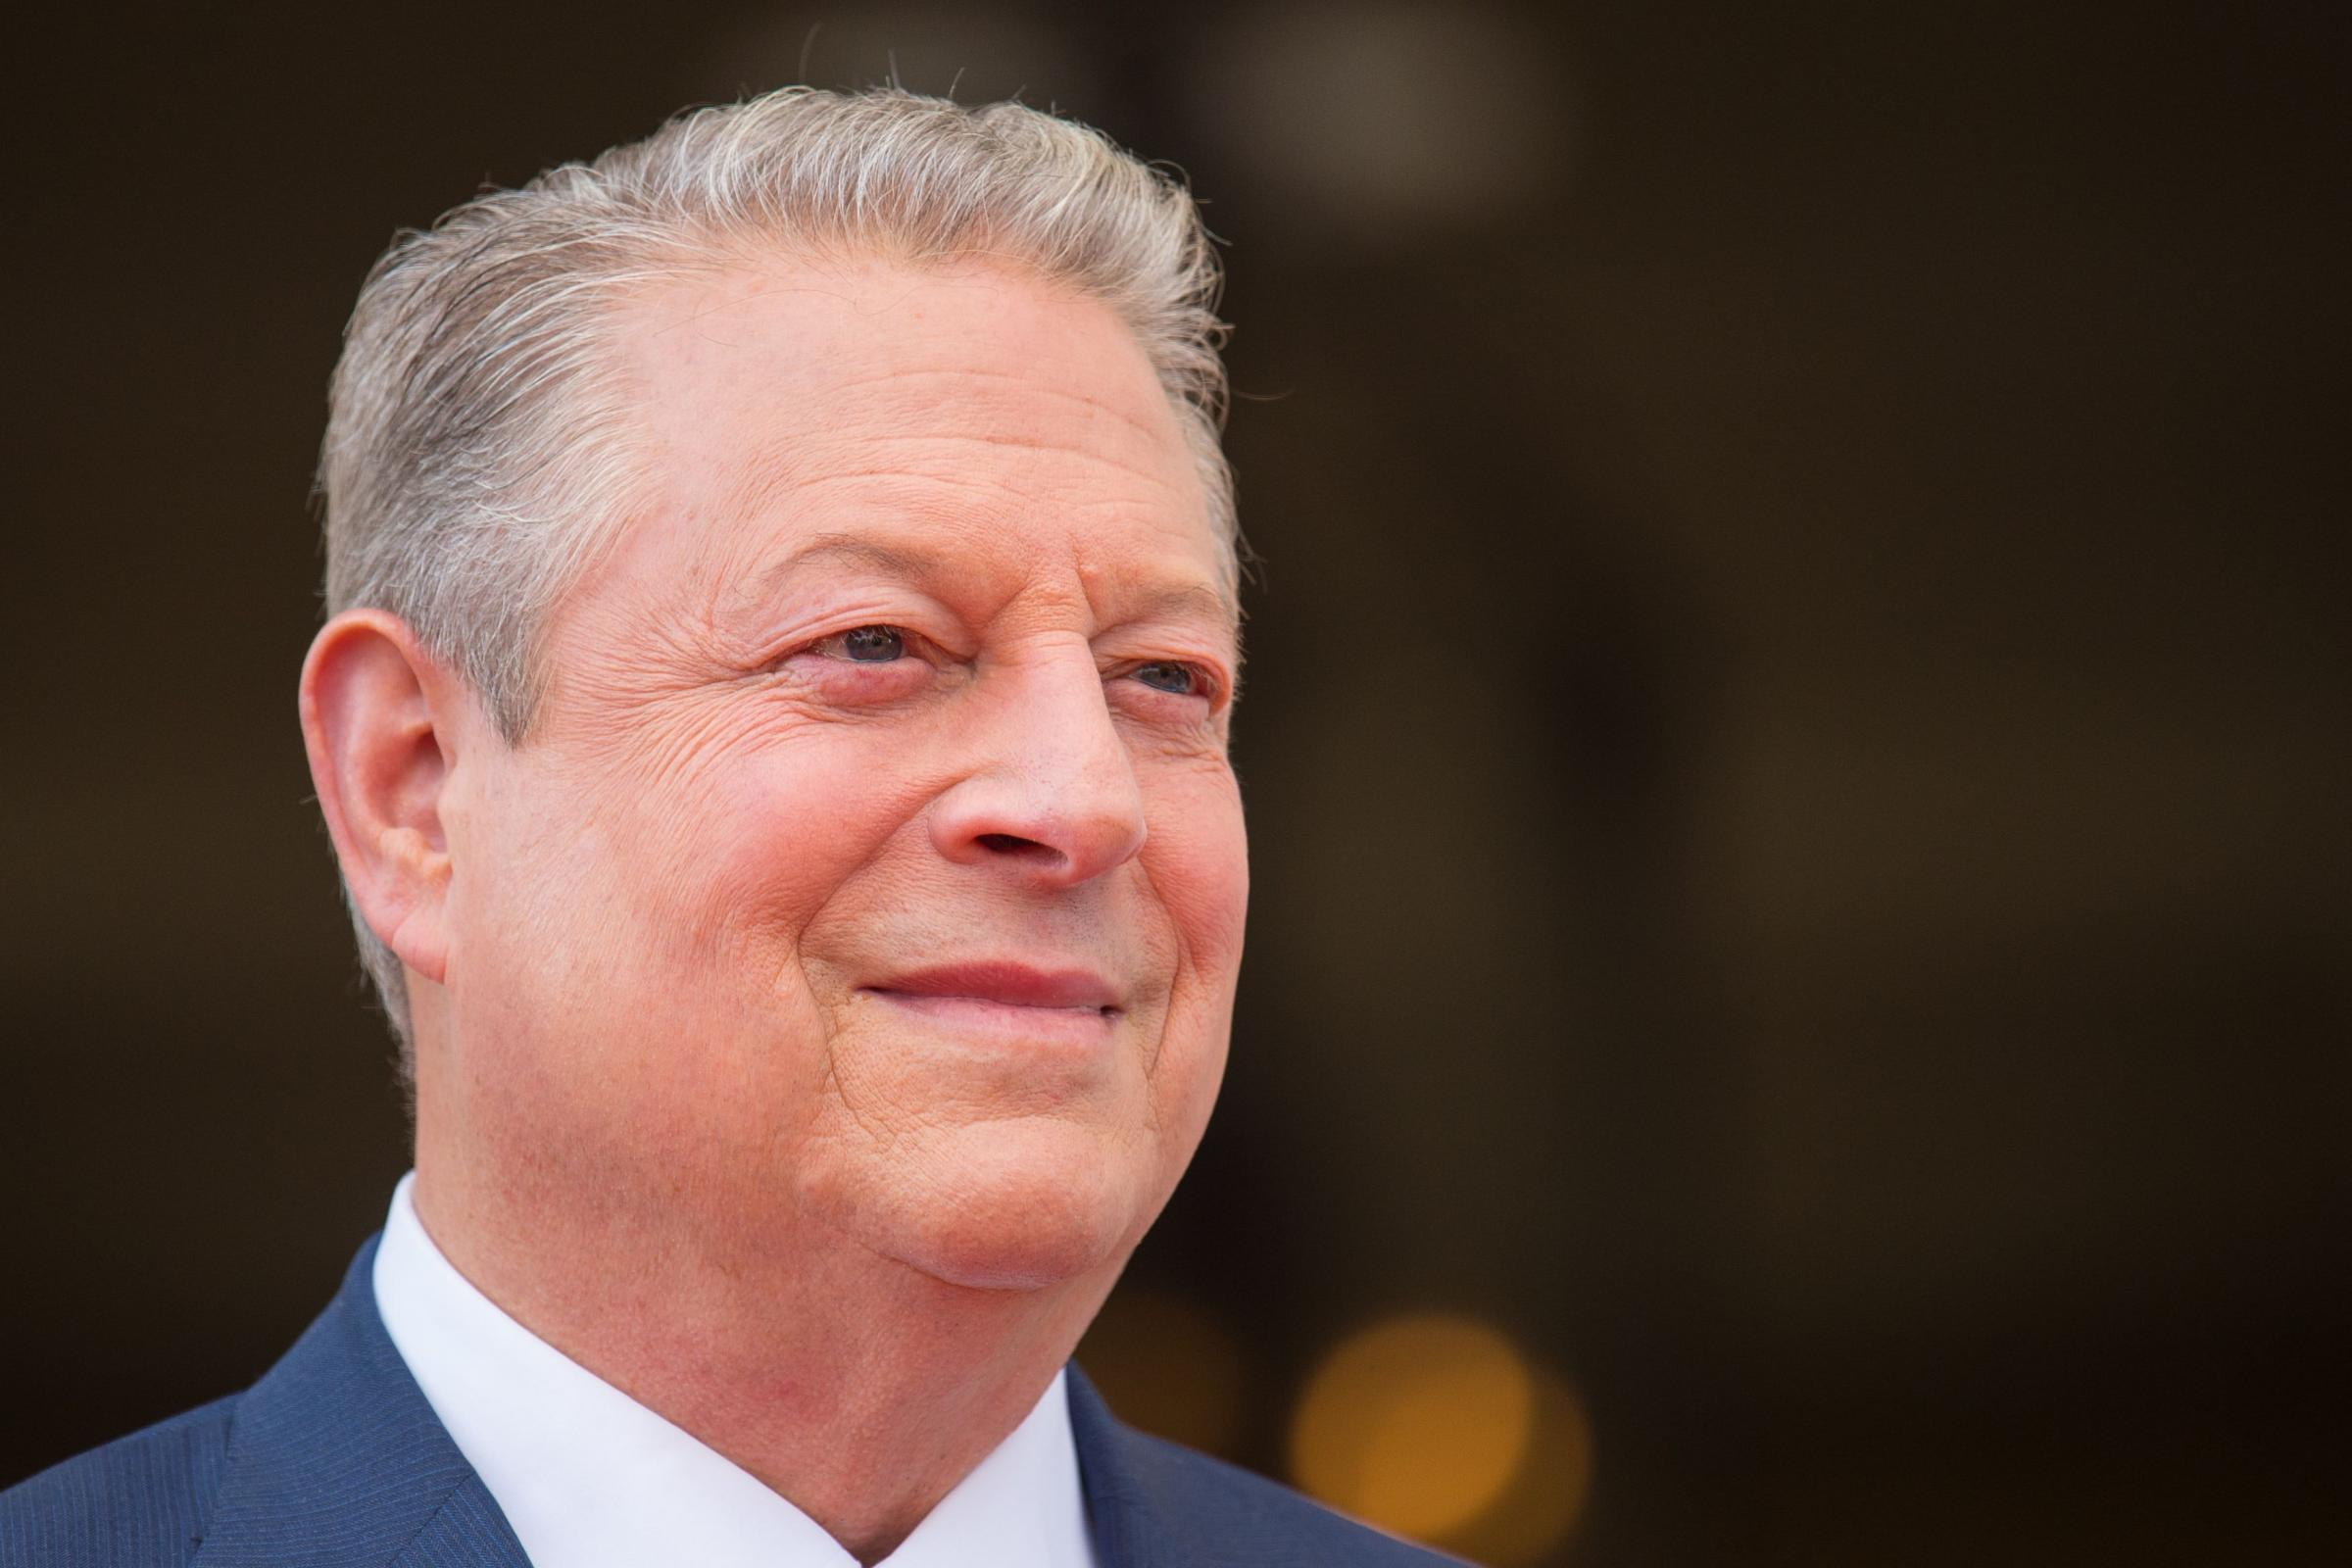 Former US vice-president Al Gore paused the interview to make the comment